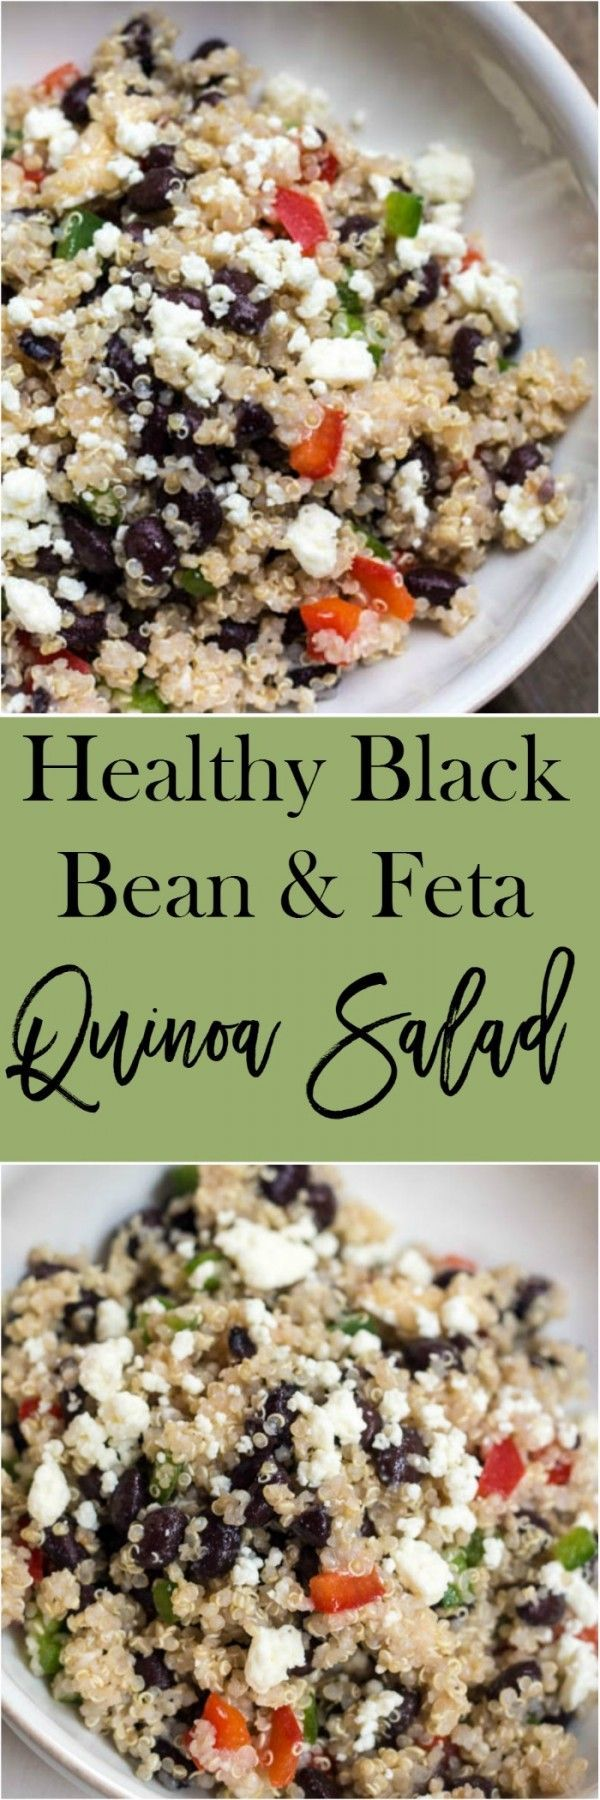 Get the recipe Healthy Black Bean and Feta Quinoa Salad @recipes_to_go